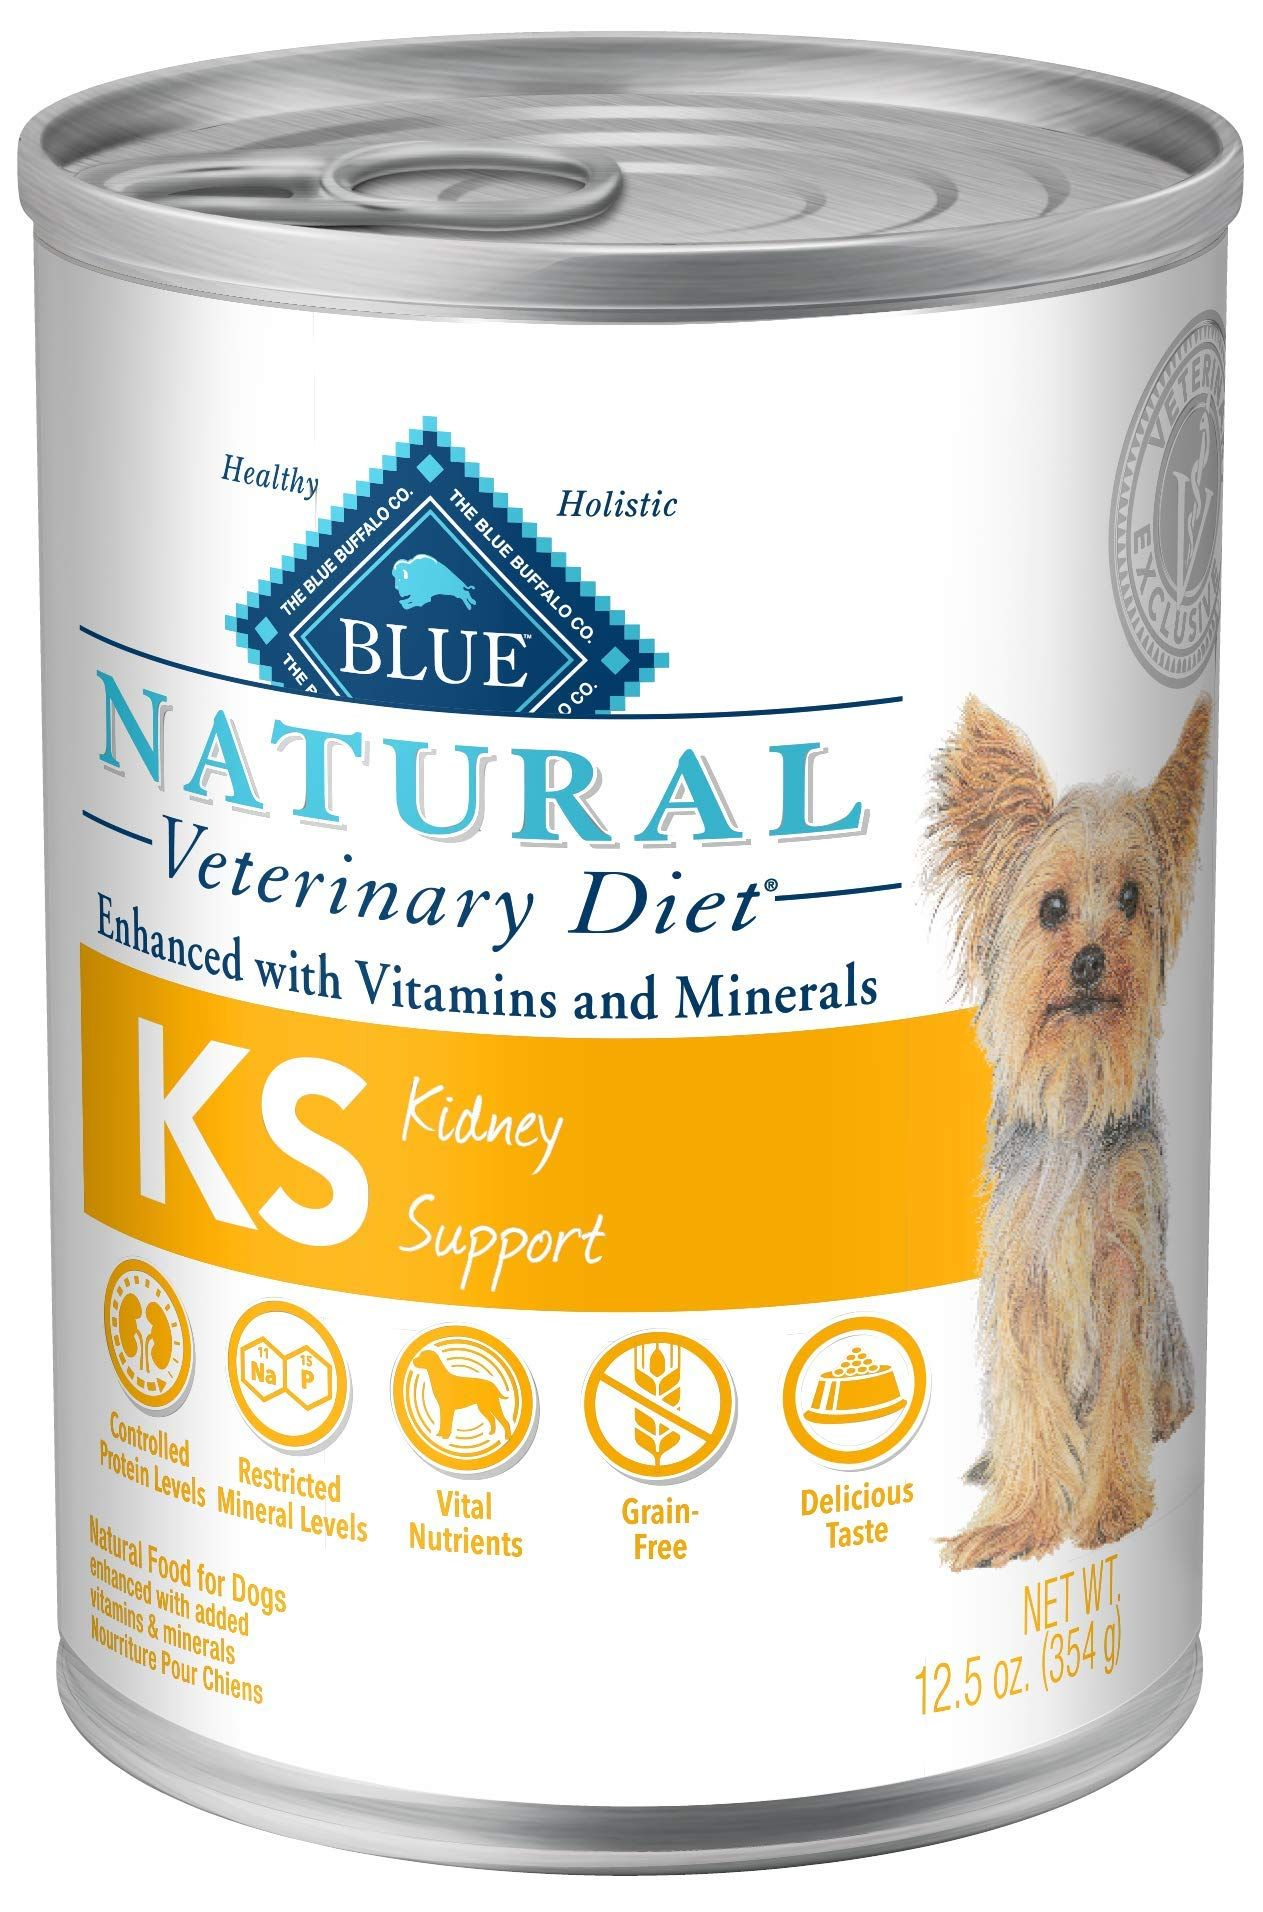 Blue natural veterinary diet support in 2020 dog food